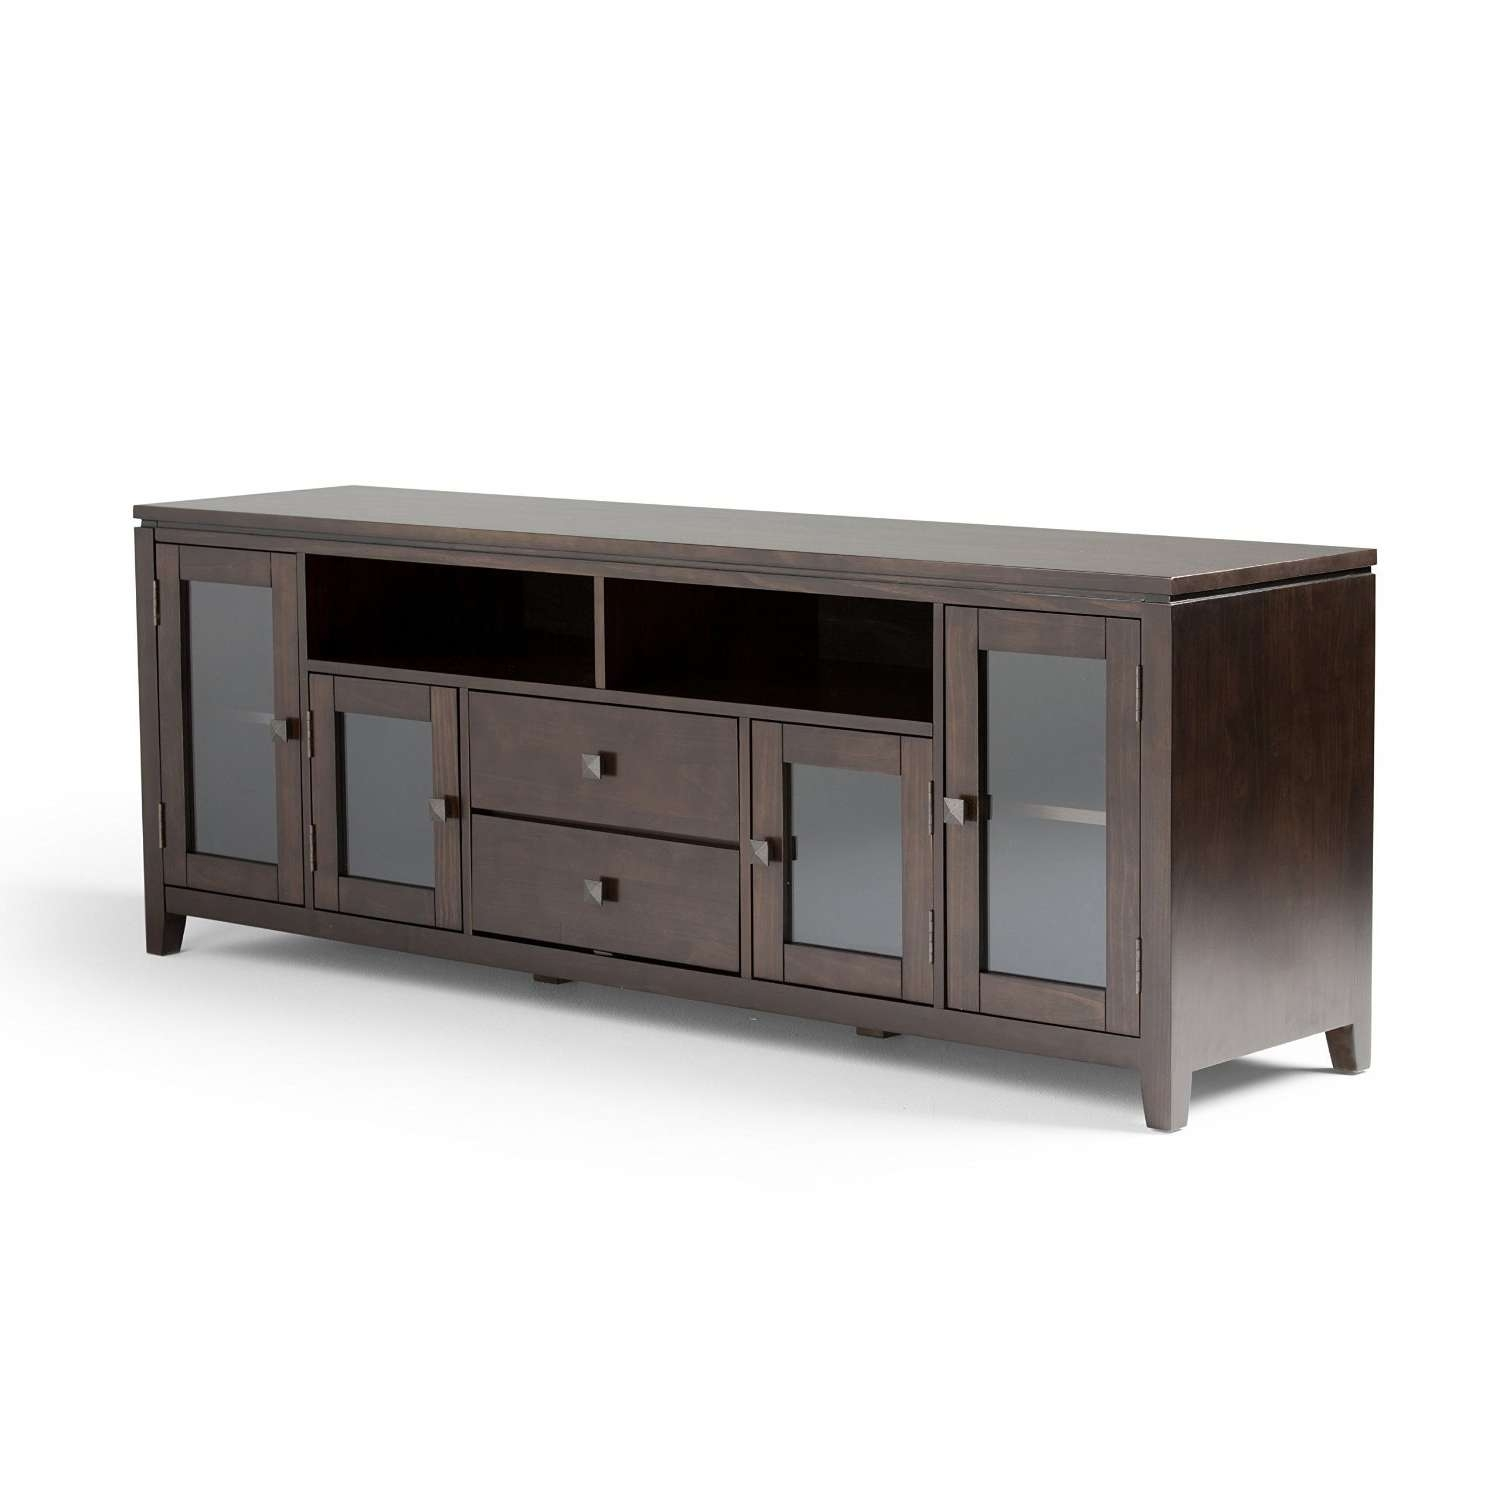 Large Tv Stand (View 12 of 20)